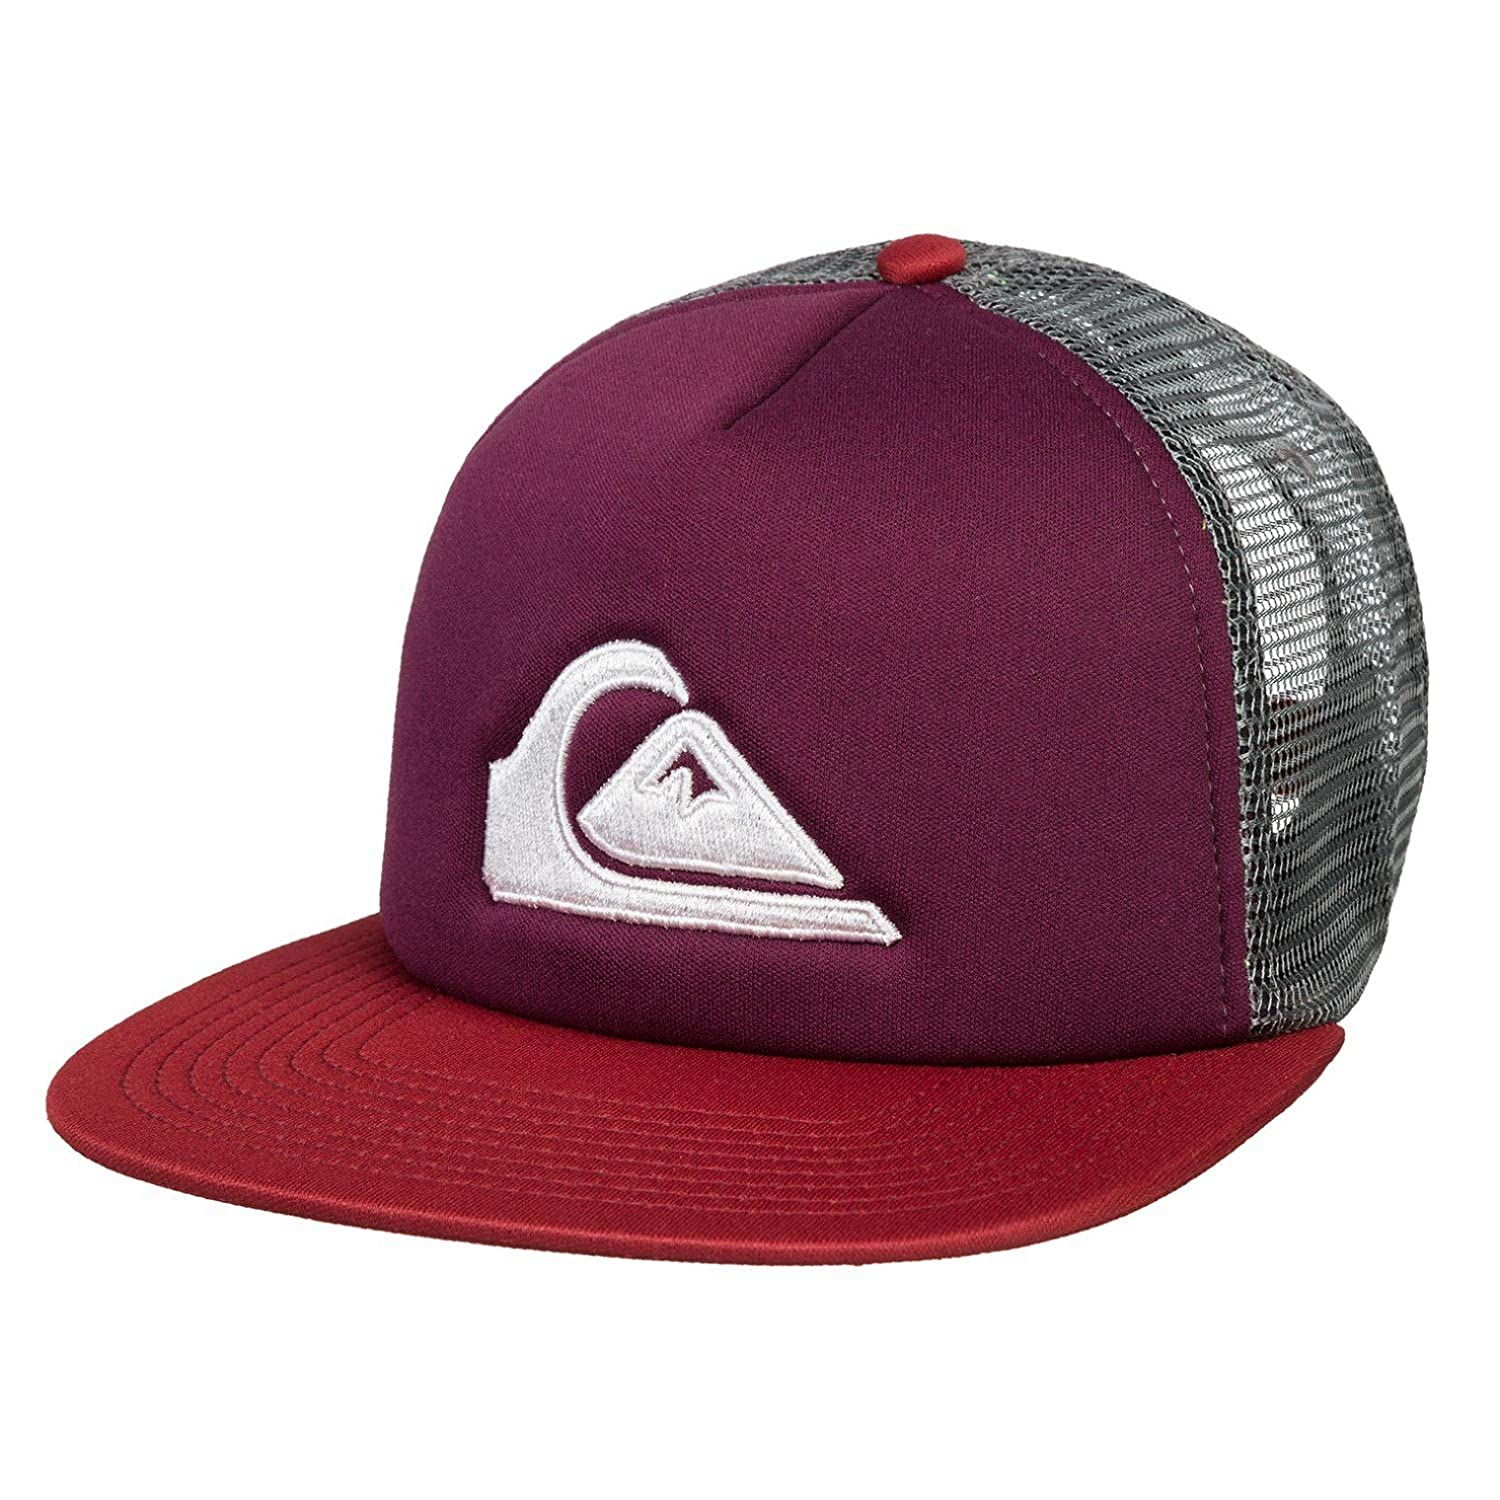 Quicksilver Wave and Mountain Surf Board Keeper Trucker Hat Skate Cap   Amazon.in  Clothing   Accessories ab425976ca0